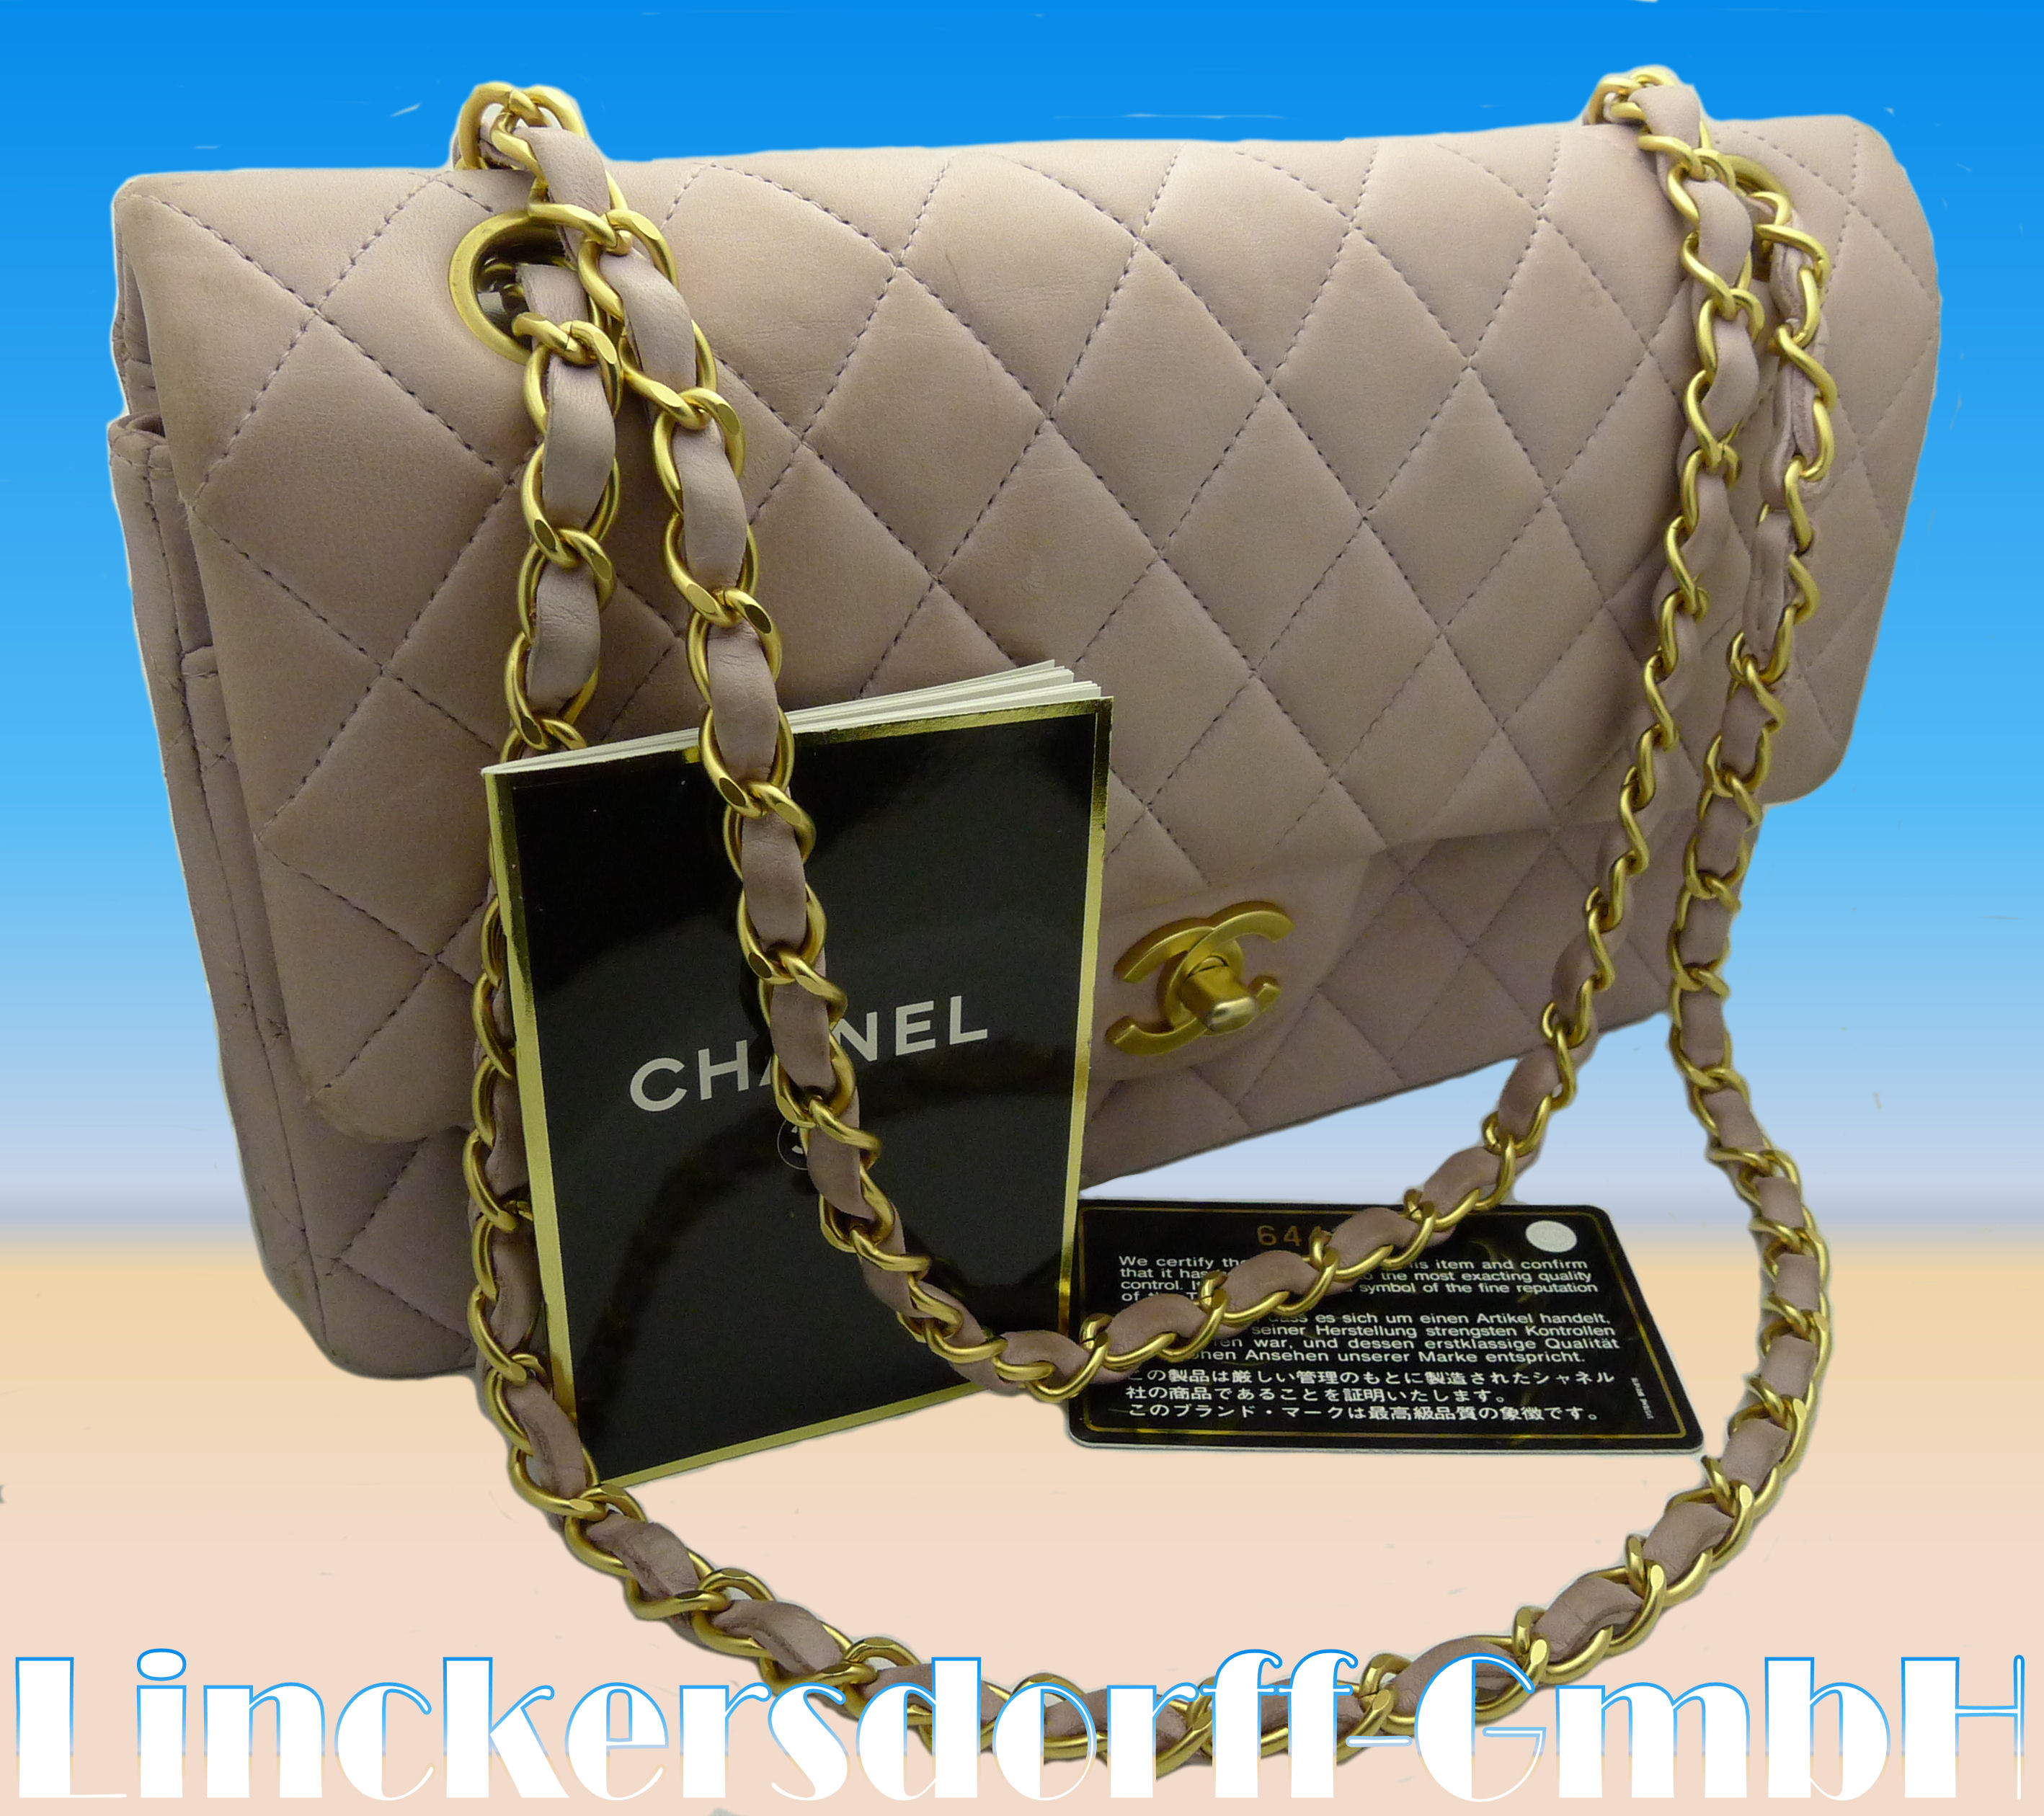 chanel tasche handtasche fliederfarben chevreauleder. Black Bedroom Furniture Sets. Home Design Ideas